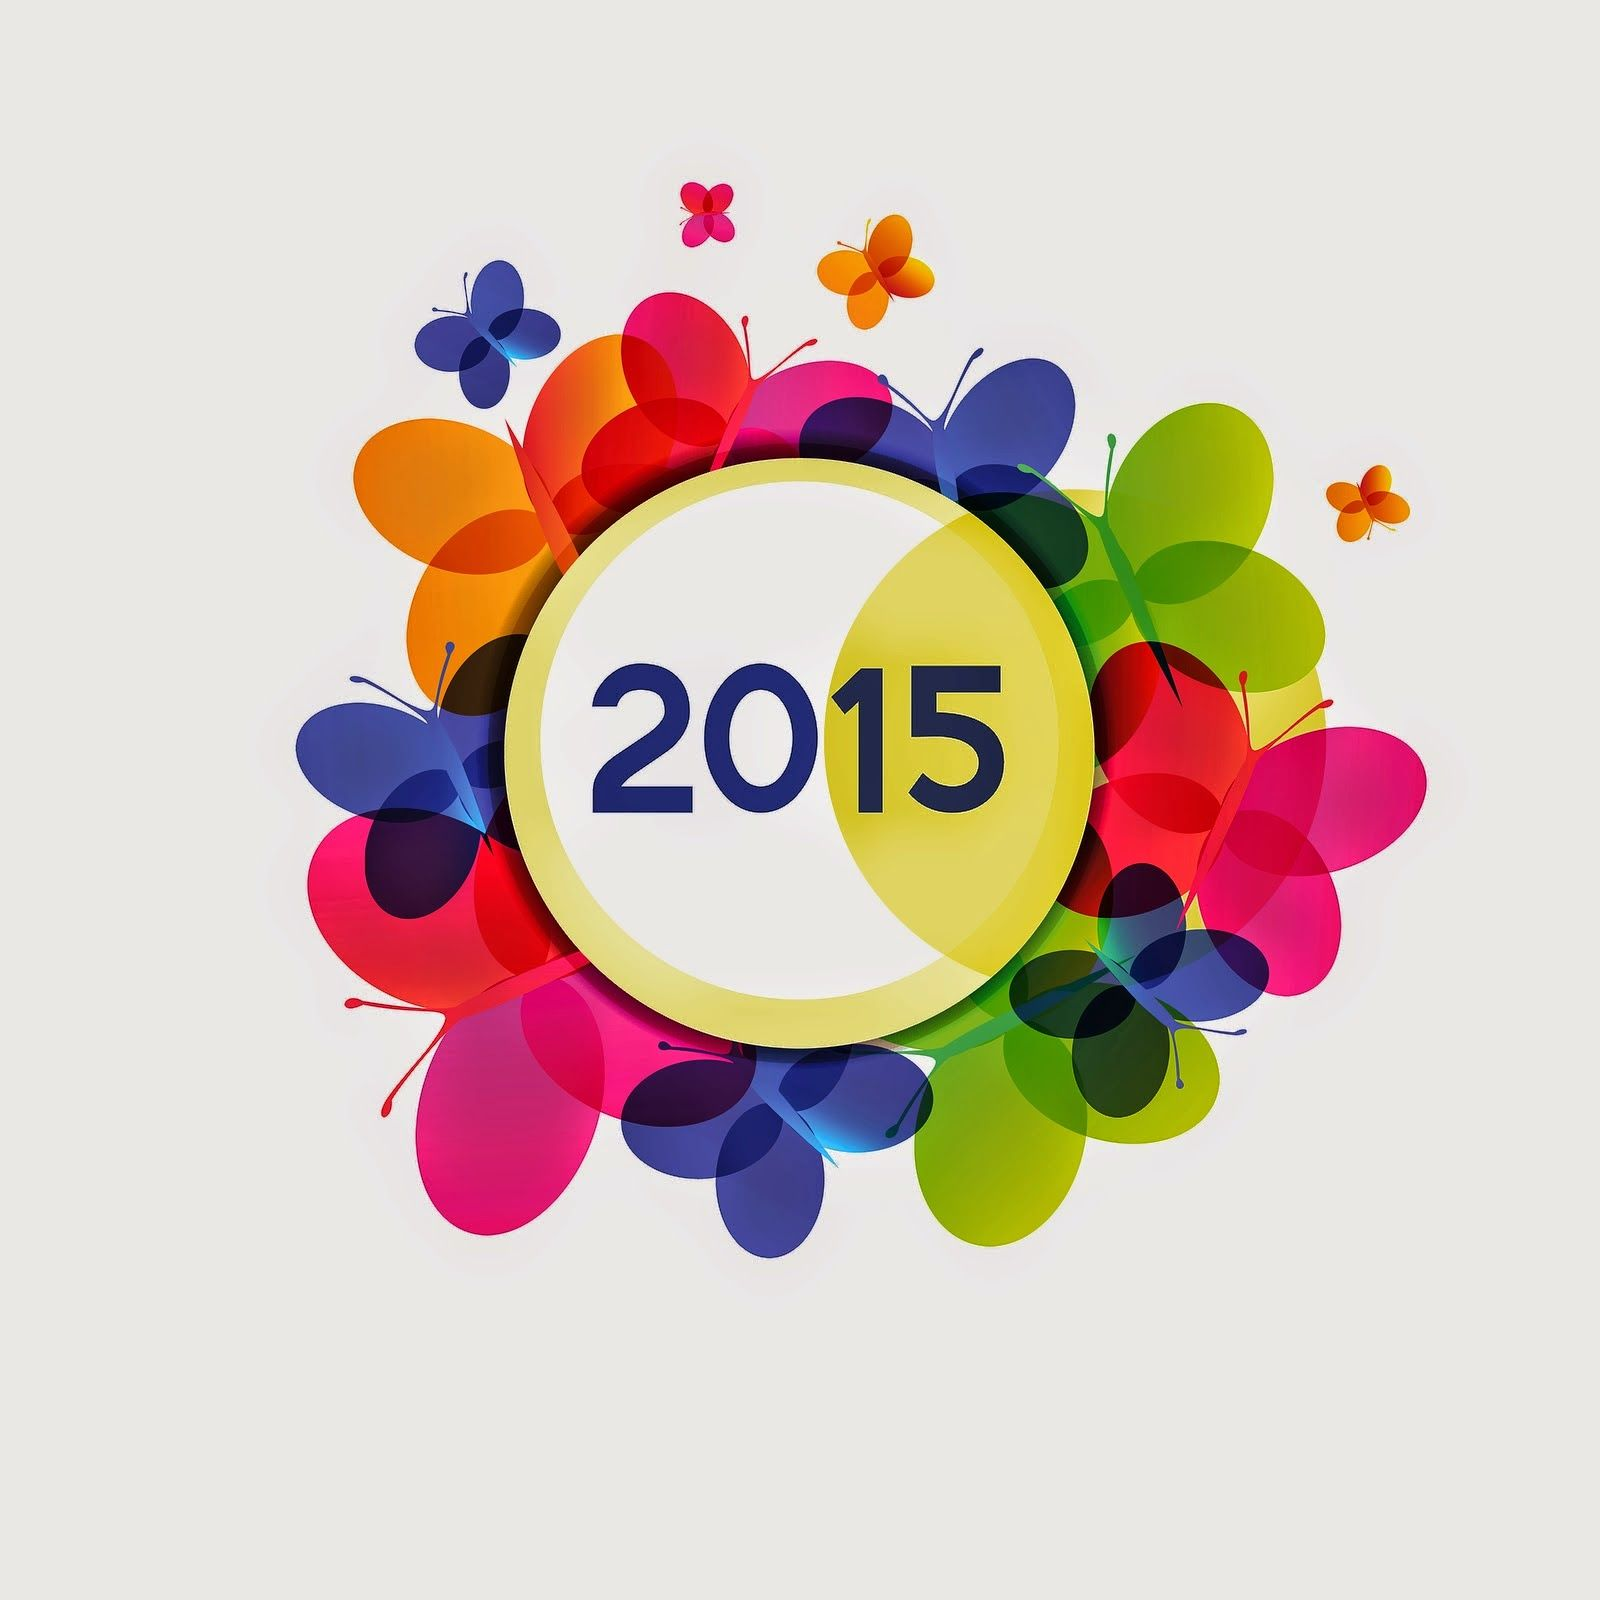 Find Happy New Year Greetings Collection For You Good Luck For Your